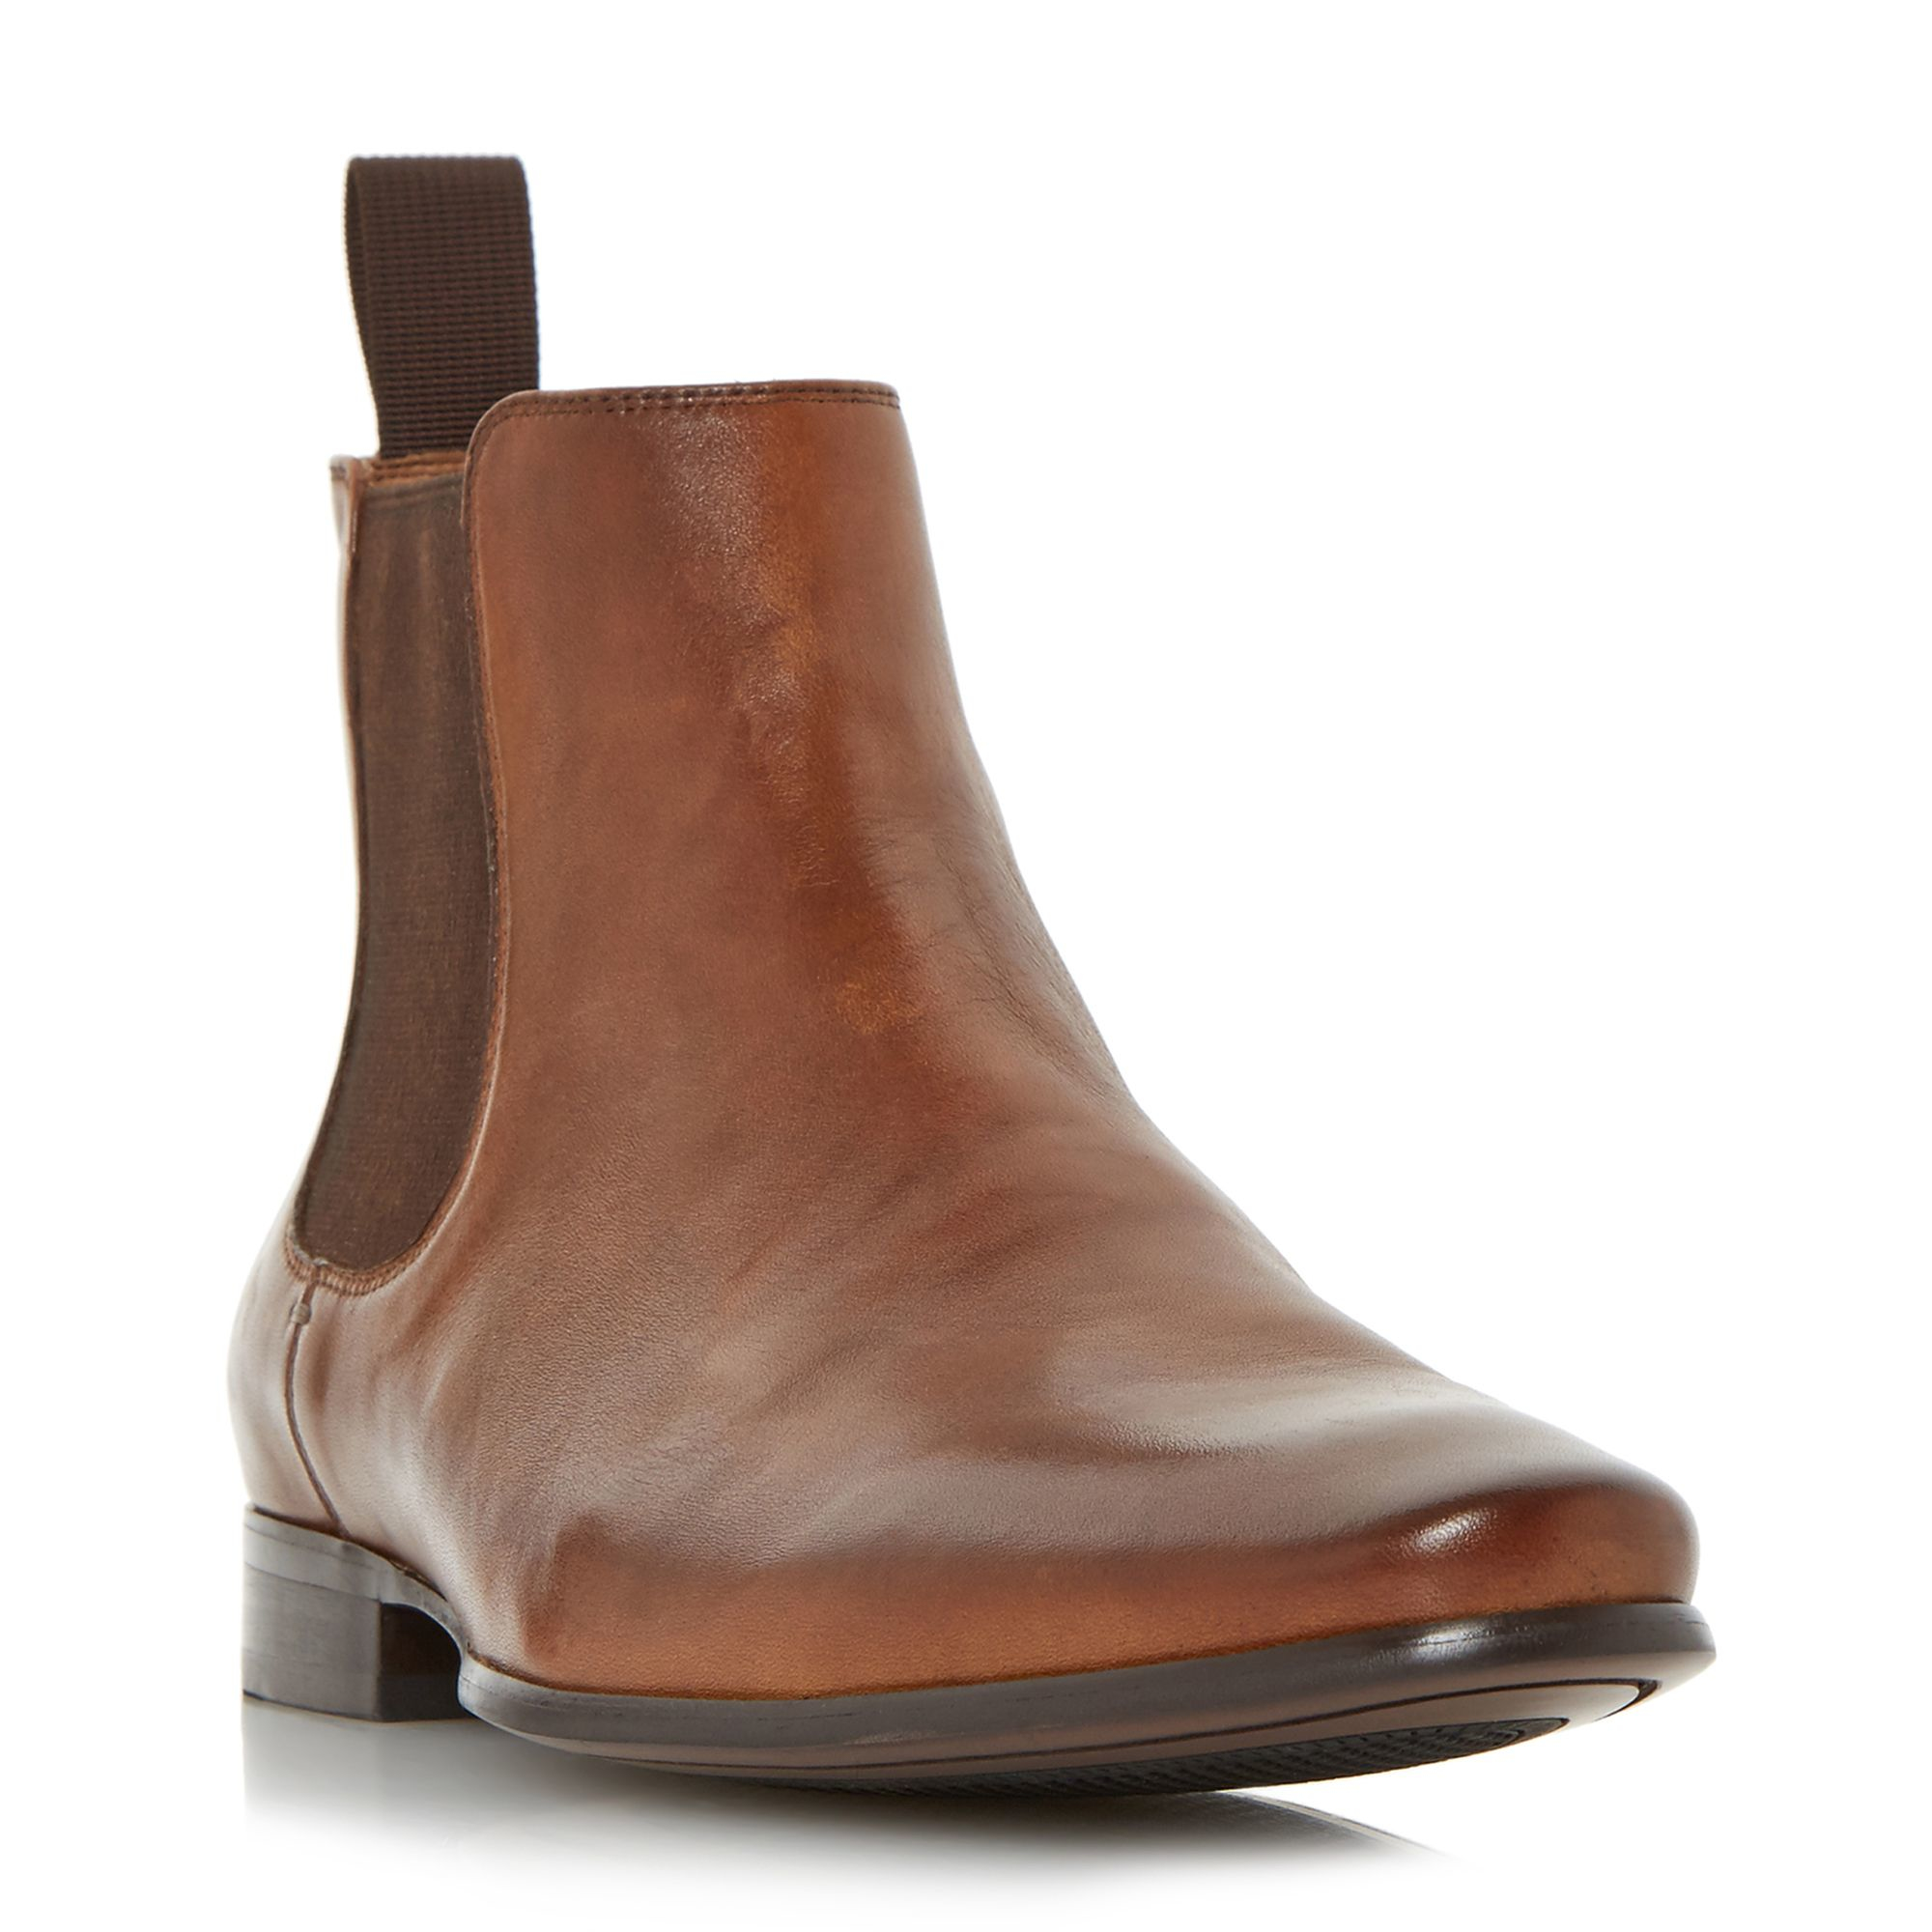 almond men Allen edmonds has been crafting world-renowned men's shoes in america since 1922 recraftable over 100 sizes & widths shop now with free shipping & returns allen edmonds.